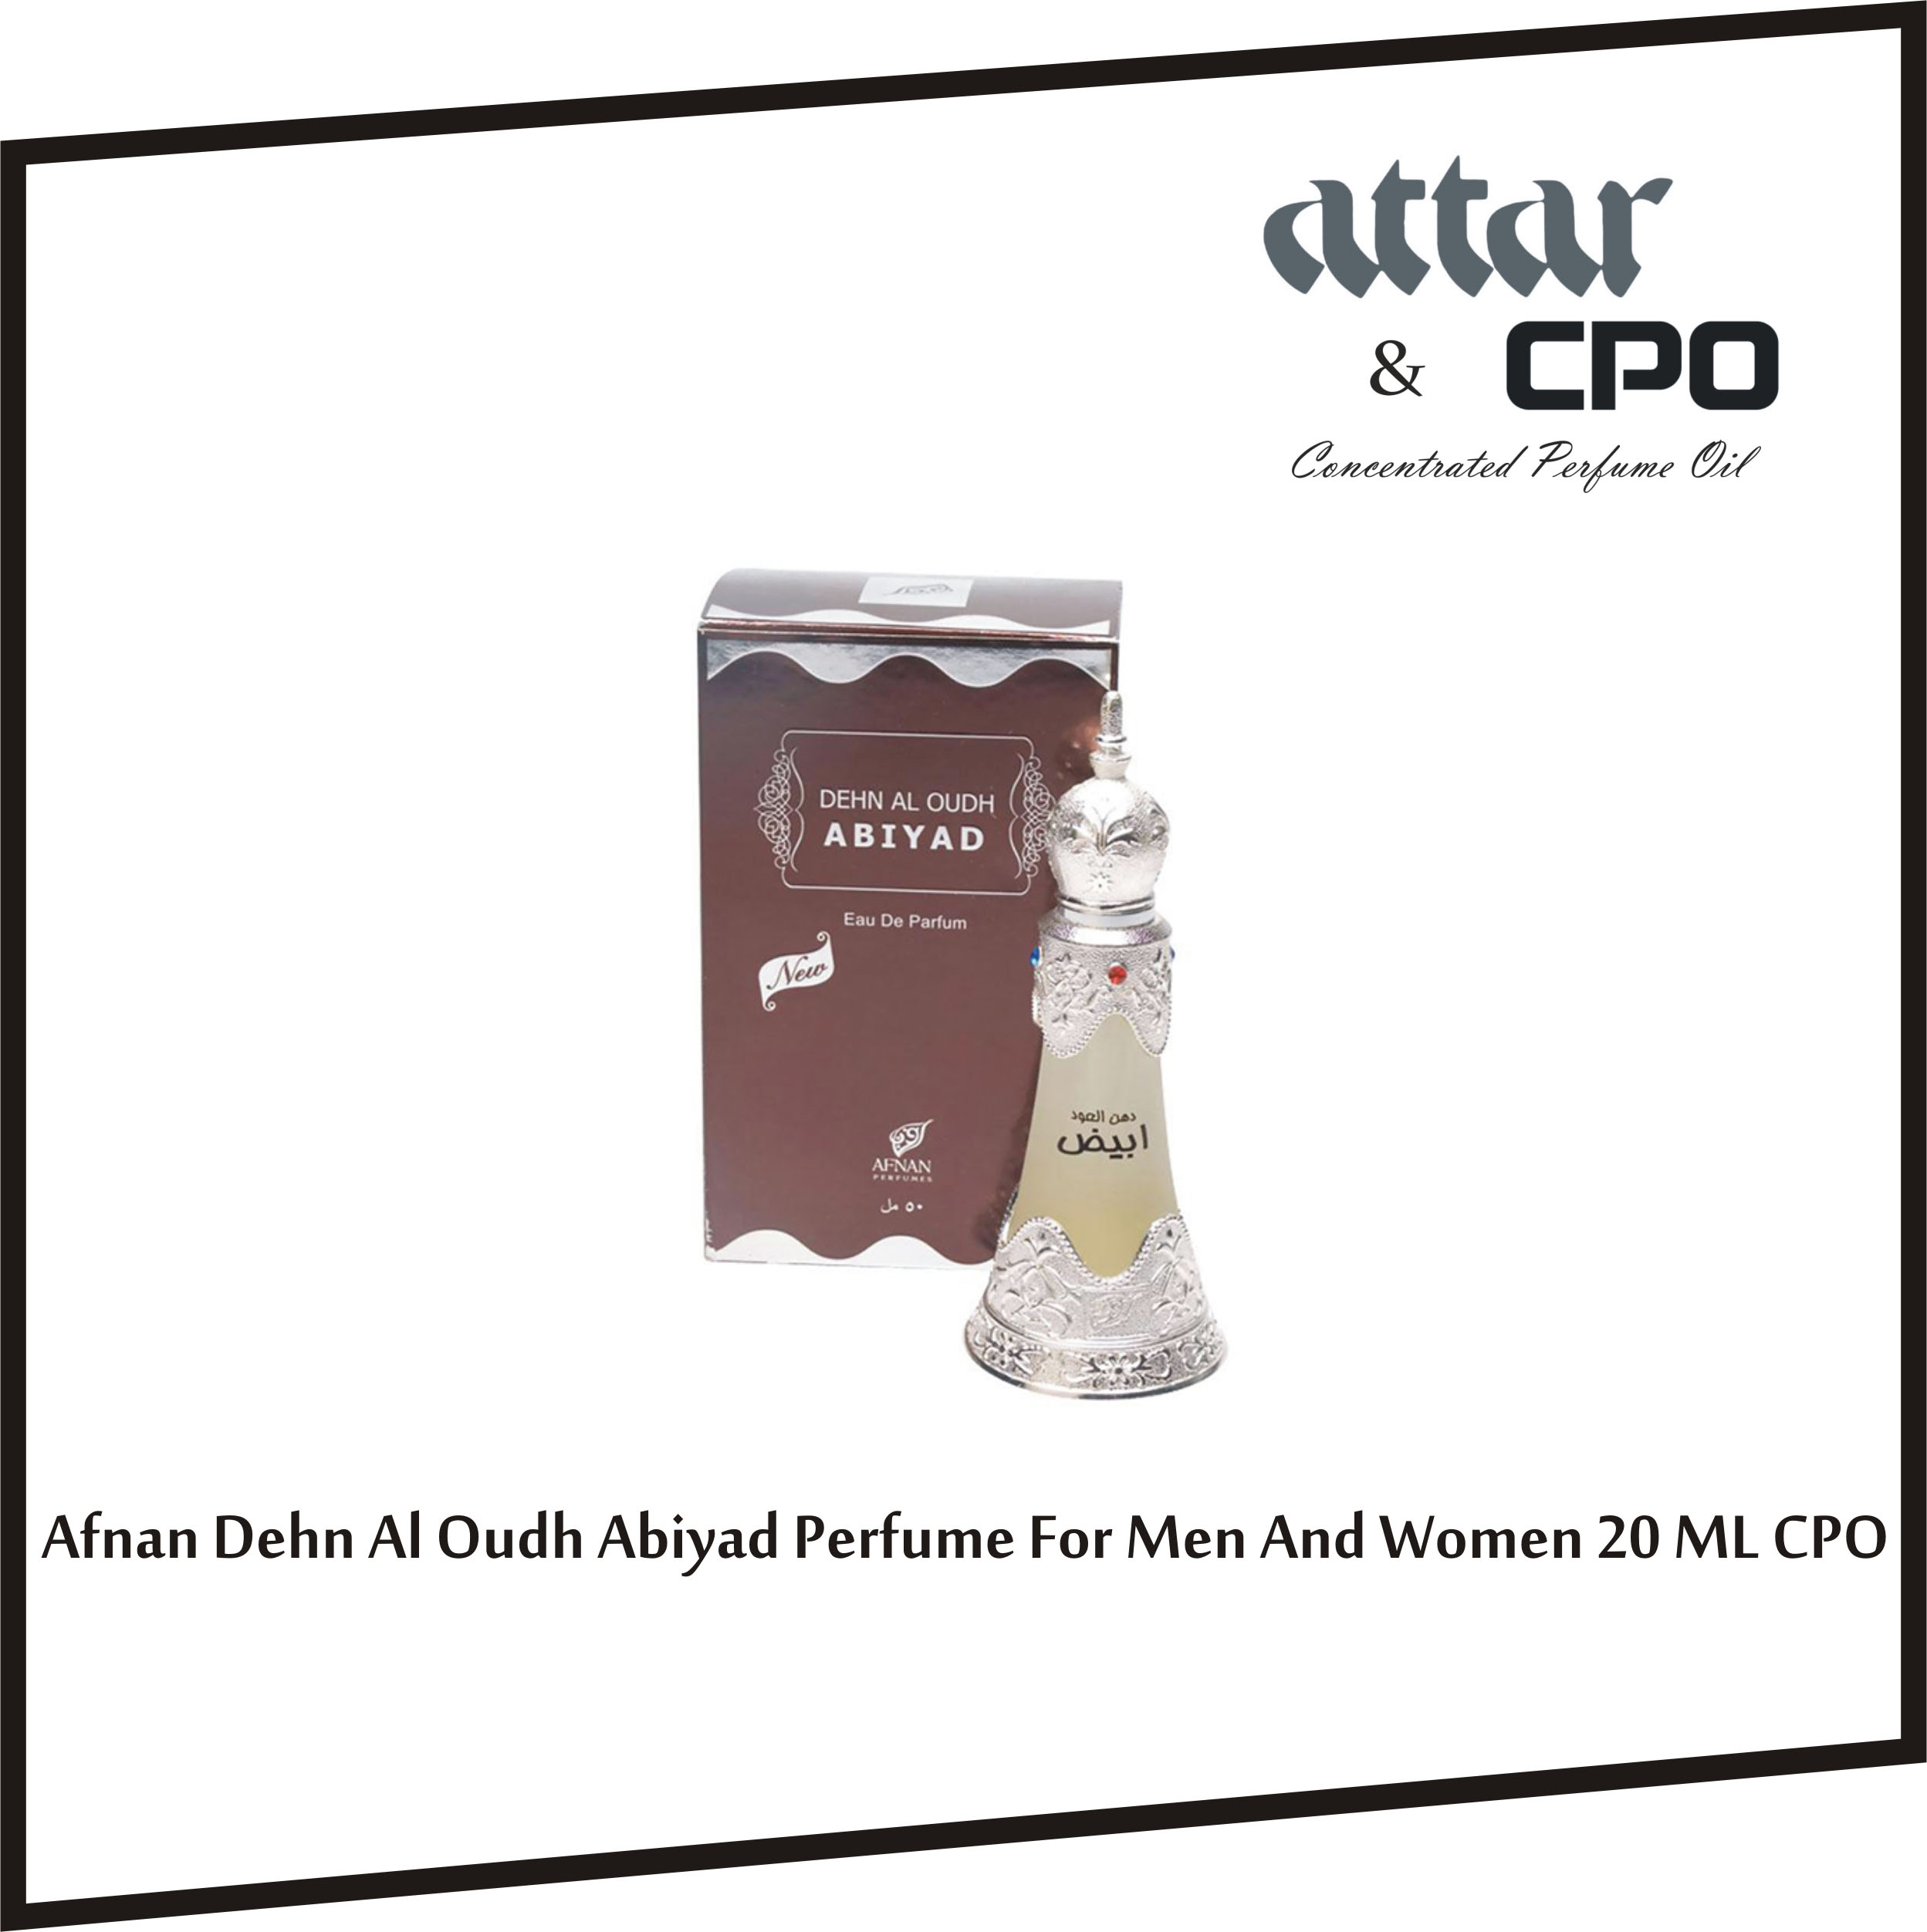 afnan-dehn-al-oudh-abiyad-perfume-for-men-and-women